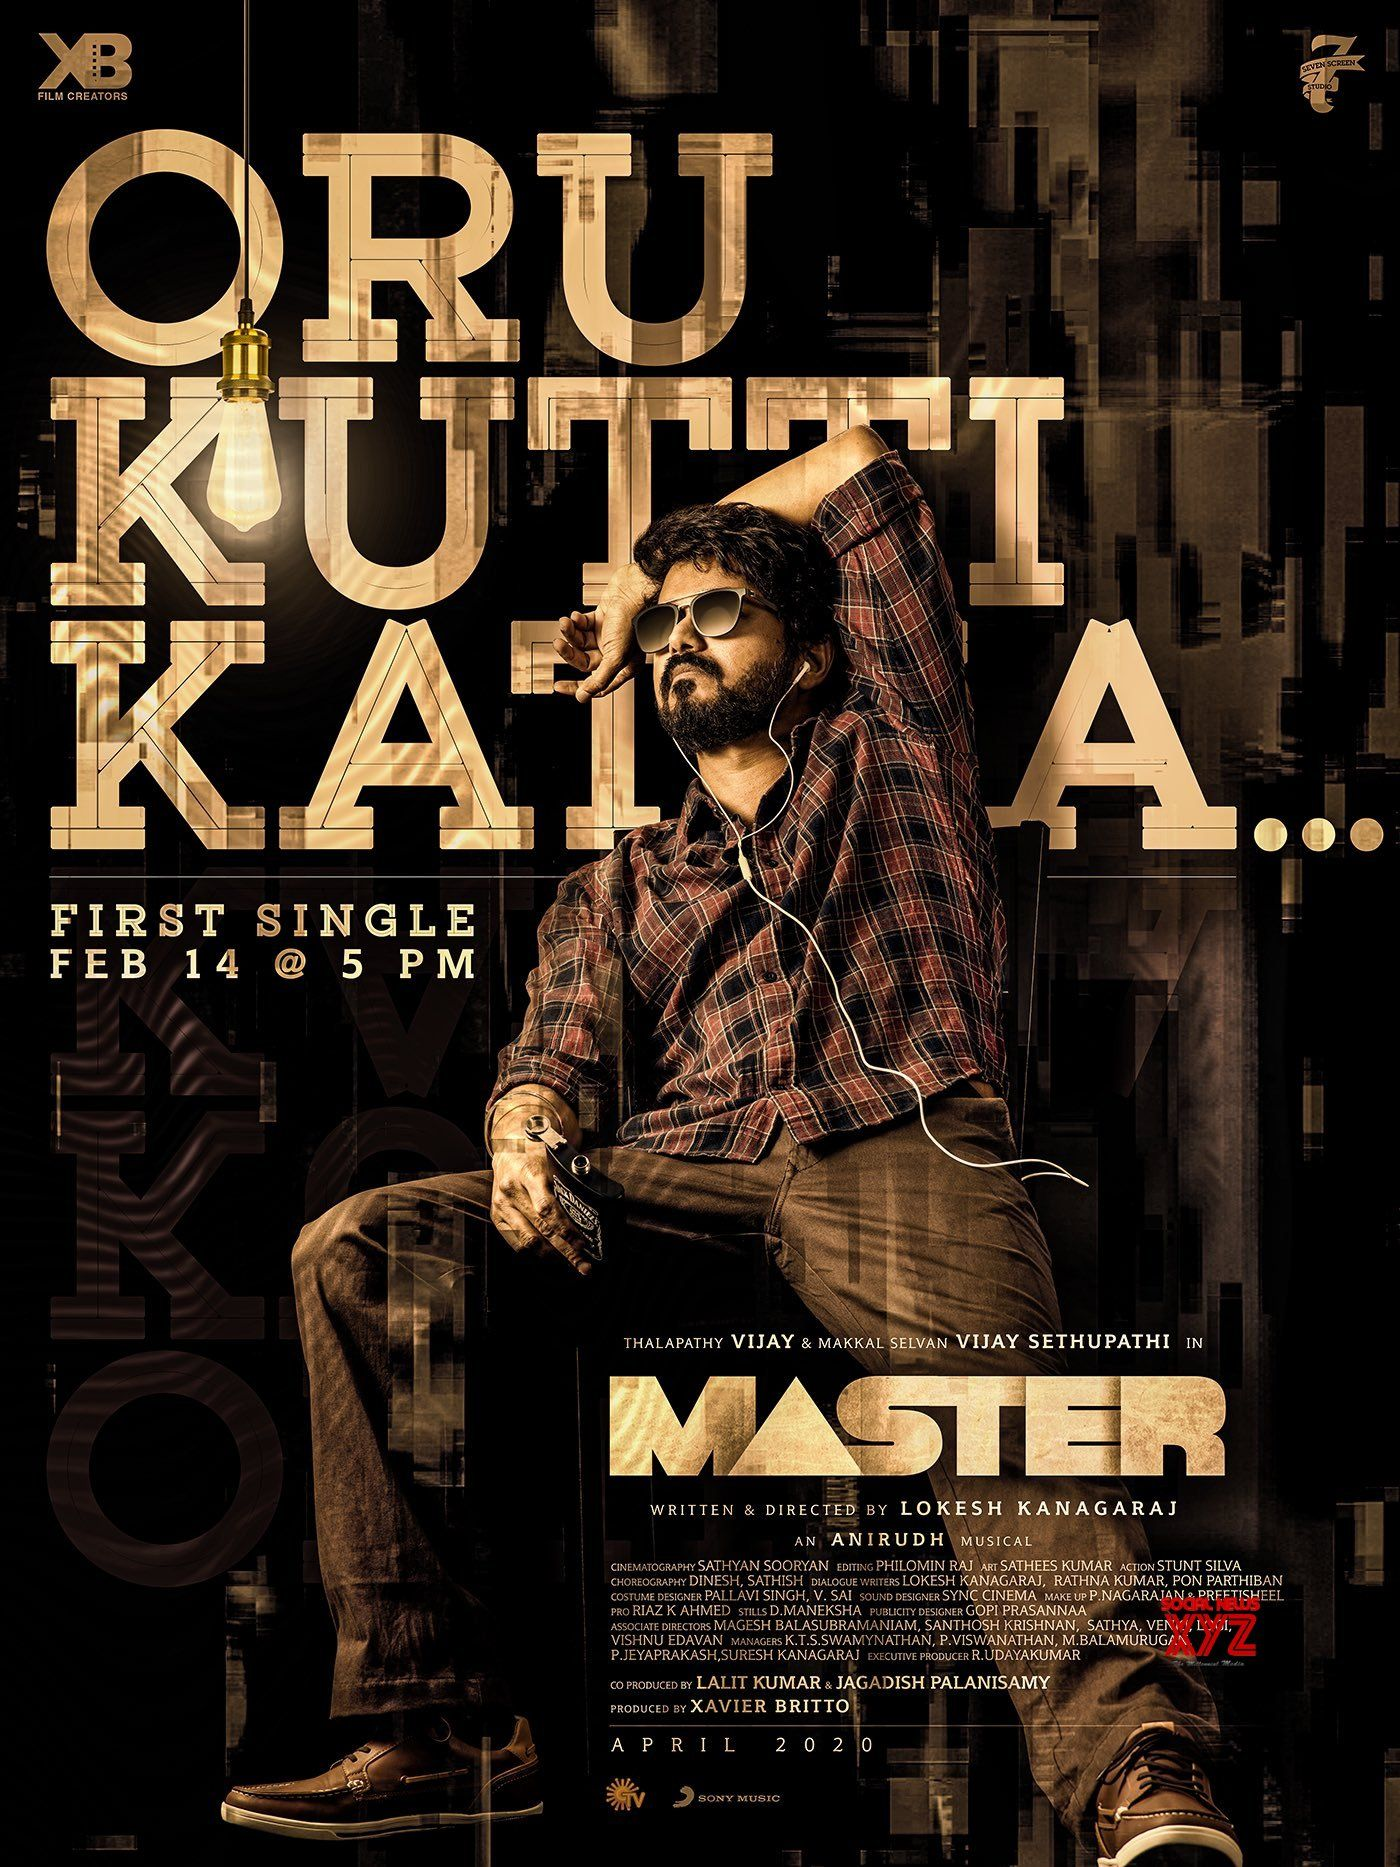 Vijay S Master Movie First Single Oru Kutti Kathai Will Be Out On Feb 14th At 5pm Vijay Orukuttikathai Mastersin In 2020 Vijay Actor It Movie Cast Thriller Film